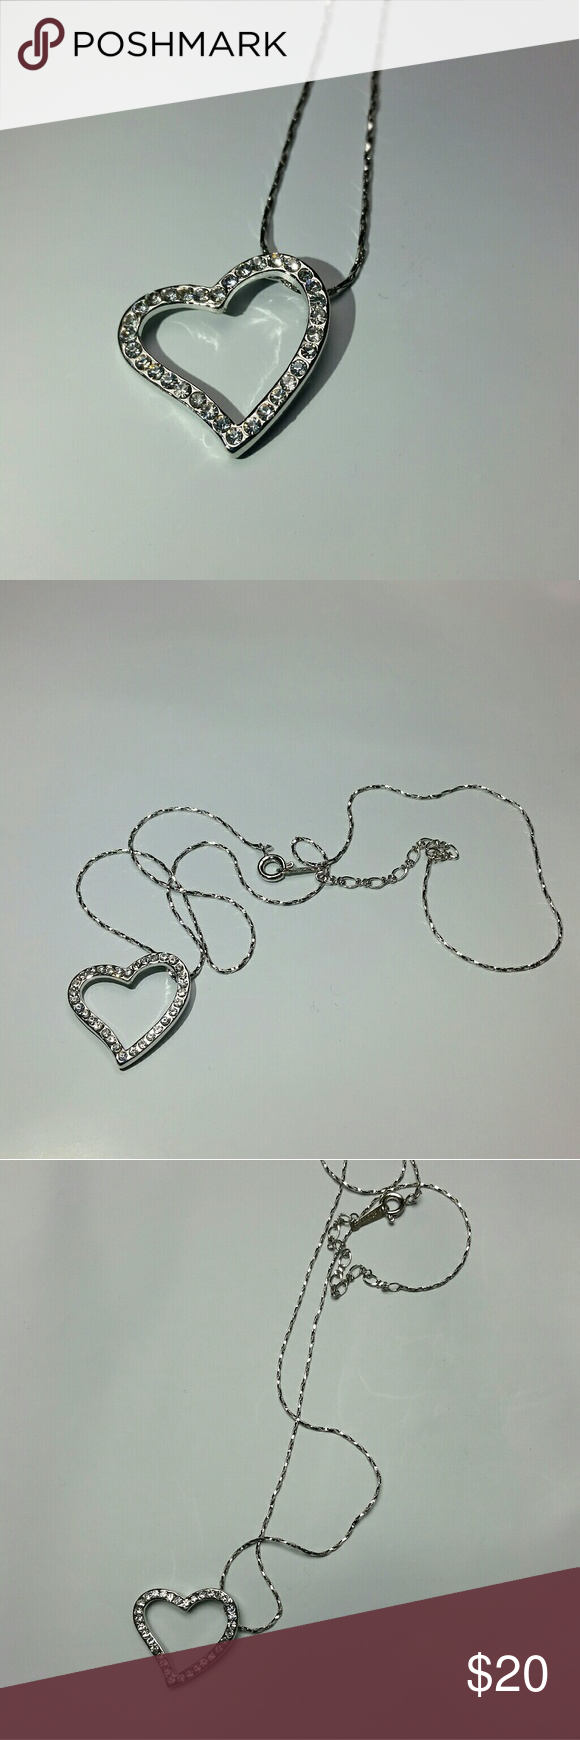 Love pendant necklace rhinestones crystals Love heart pendant charm with rhinestones crystals.  Stamp 18KRGP. It's 18 karat white gold plated.  Very elegant necklace. Chain is box twisted. About 17-18 inches long. Medium long. With round ring springy lock. Jewelry Necklaces